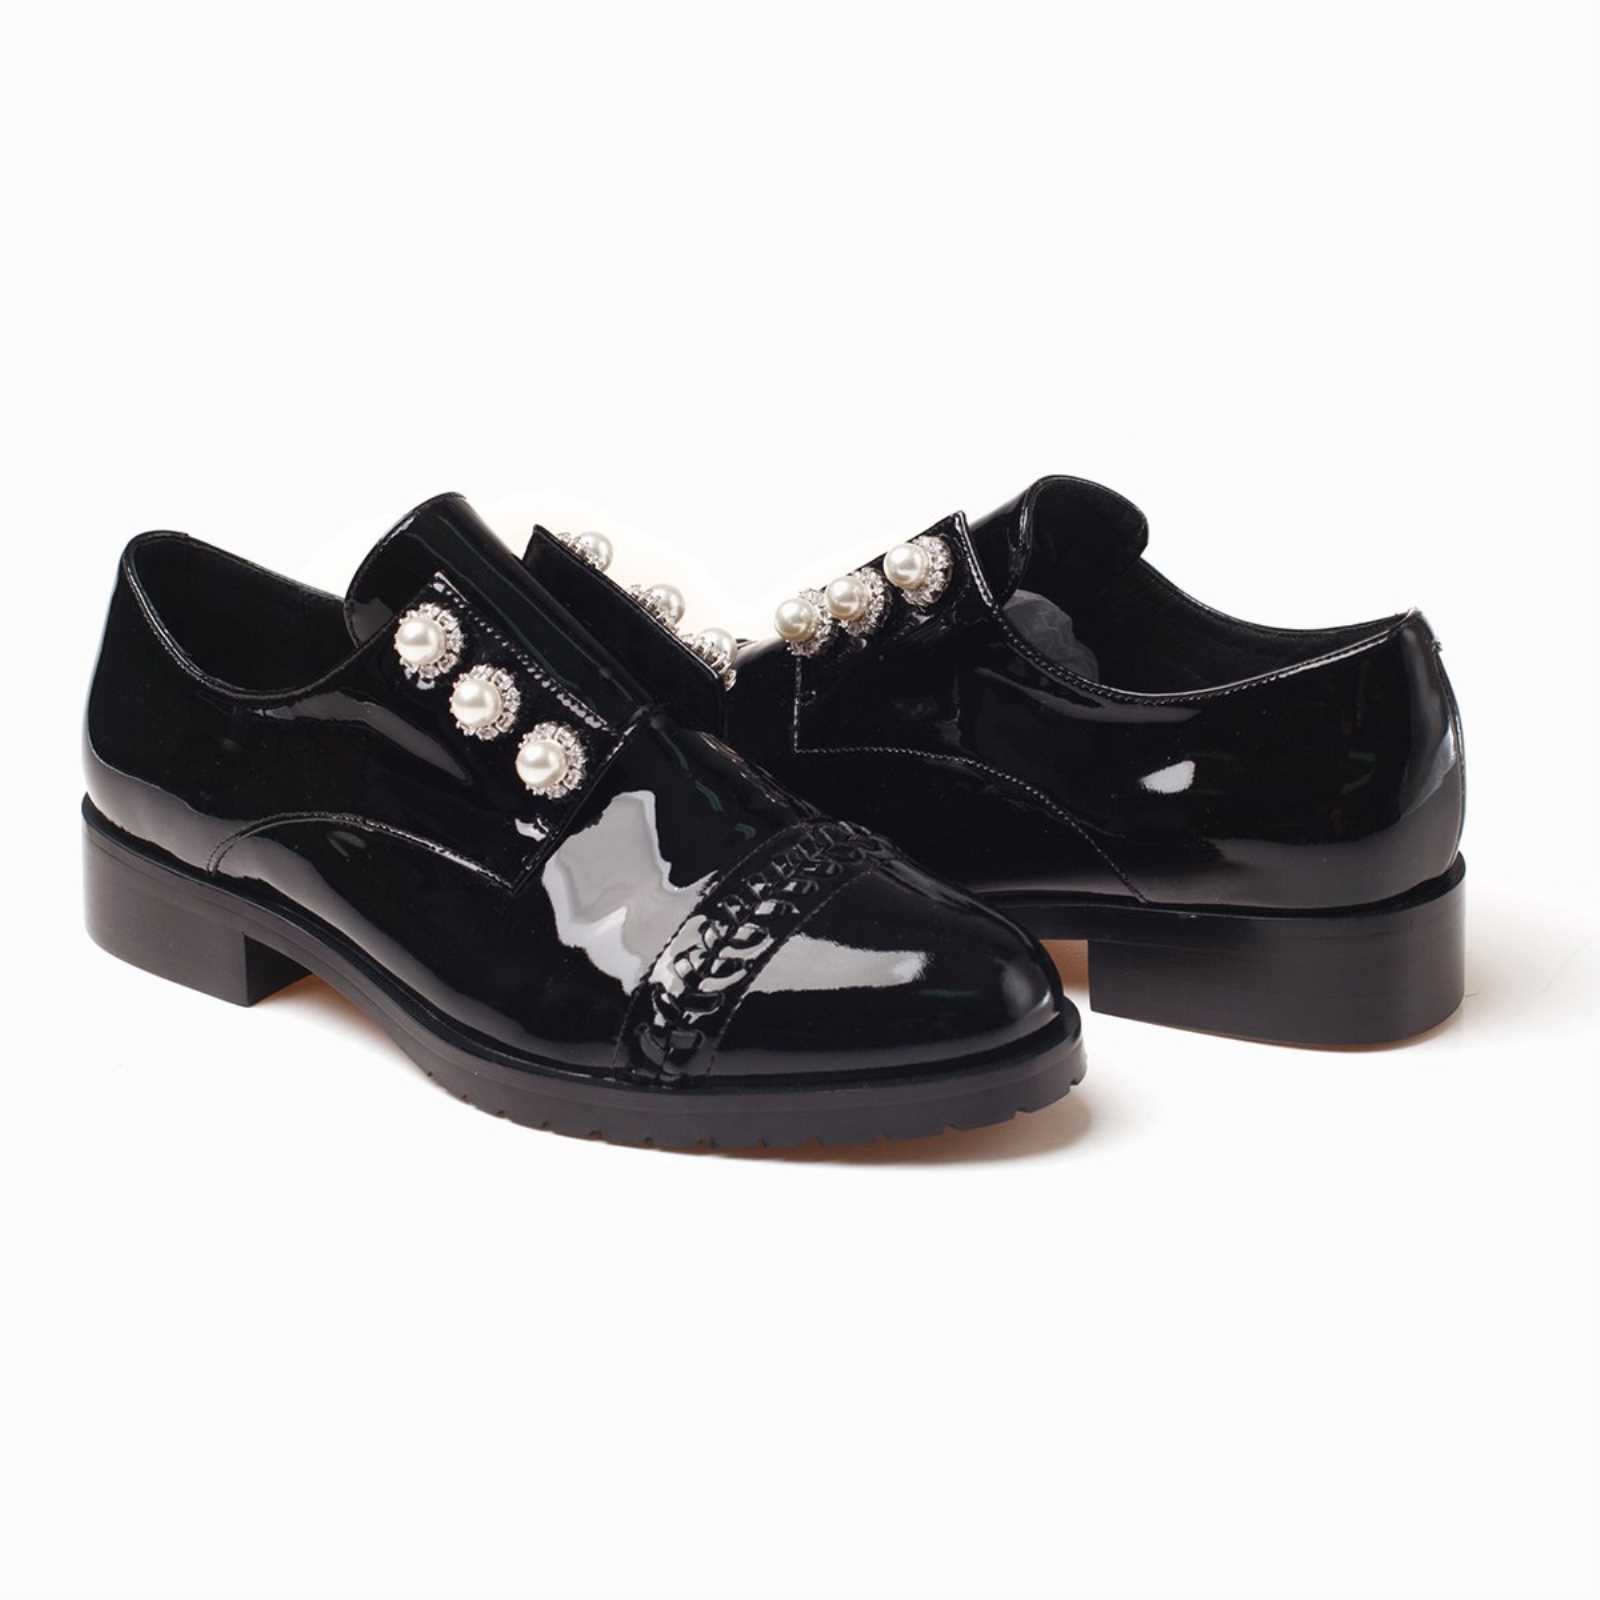 f195ae94761 Details about UGG OZWEAR LADIES PIA OXFORD SHOES WITH PEARL GENUINE LEATHER  BLACK FLATS OB261